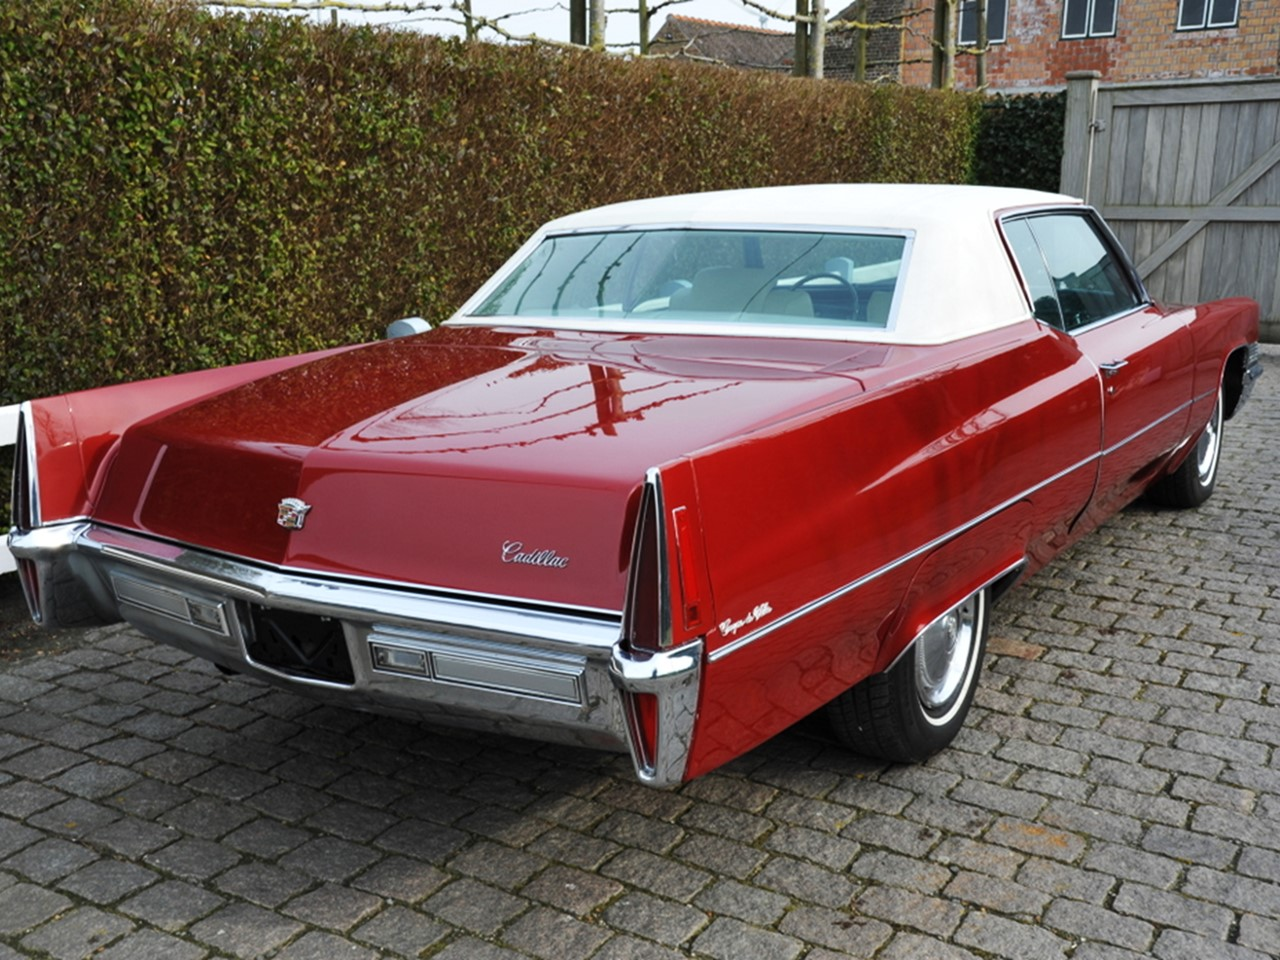 1968 Cadillac Fleetwood Eldorado | NotoriousLuxury